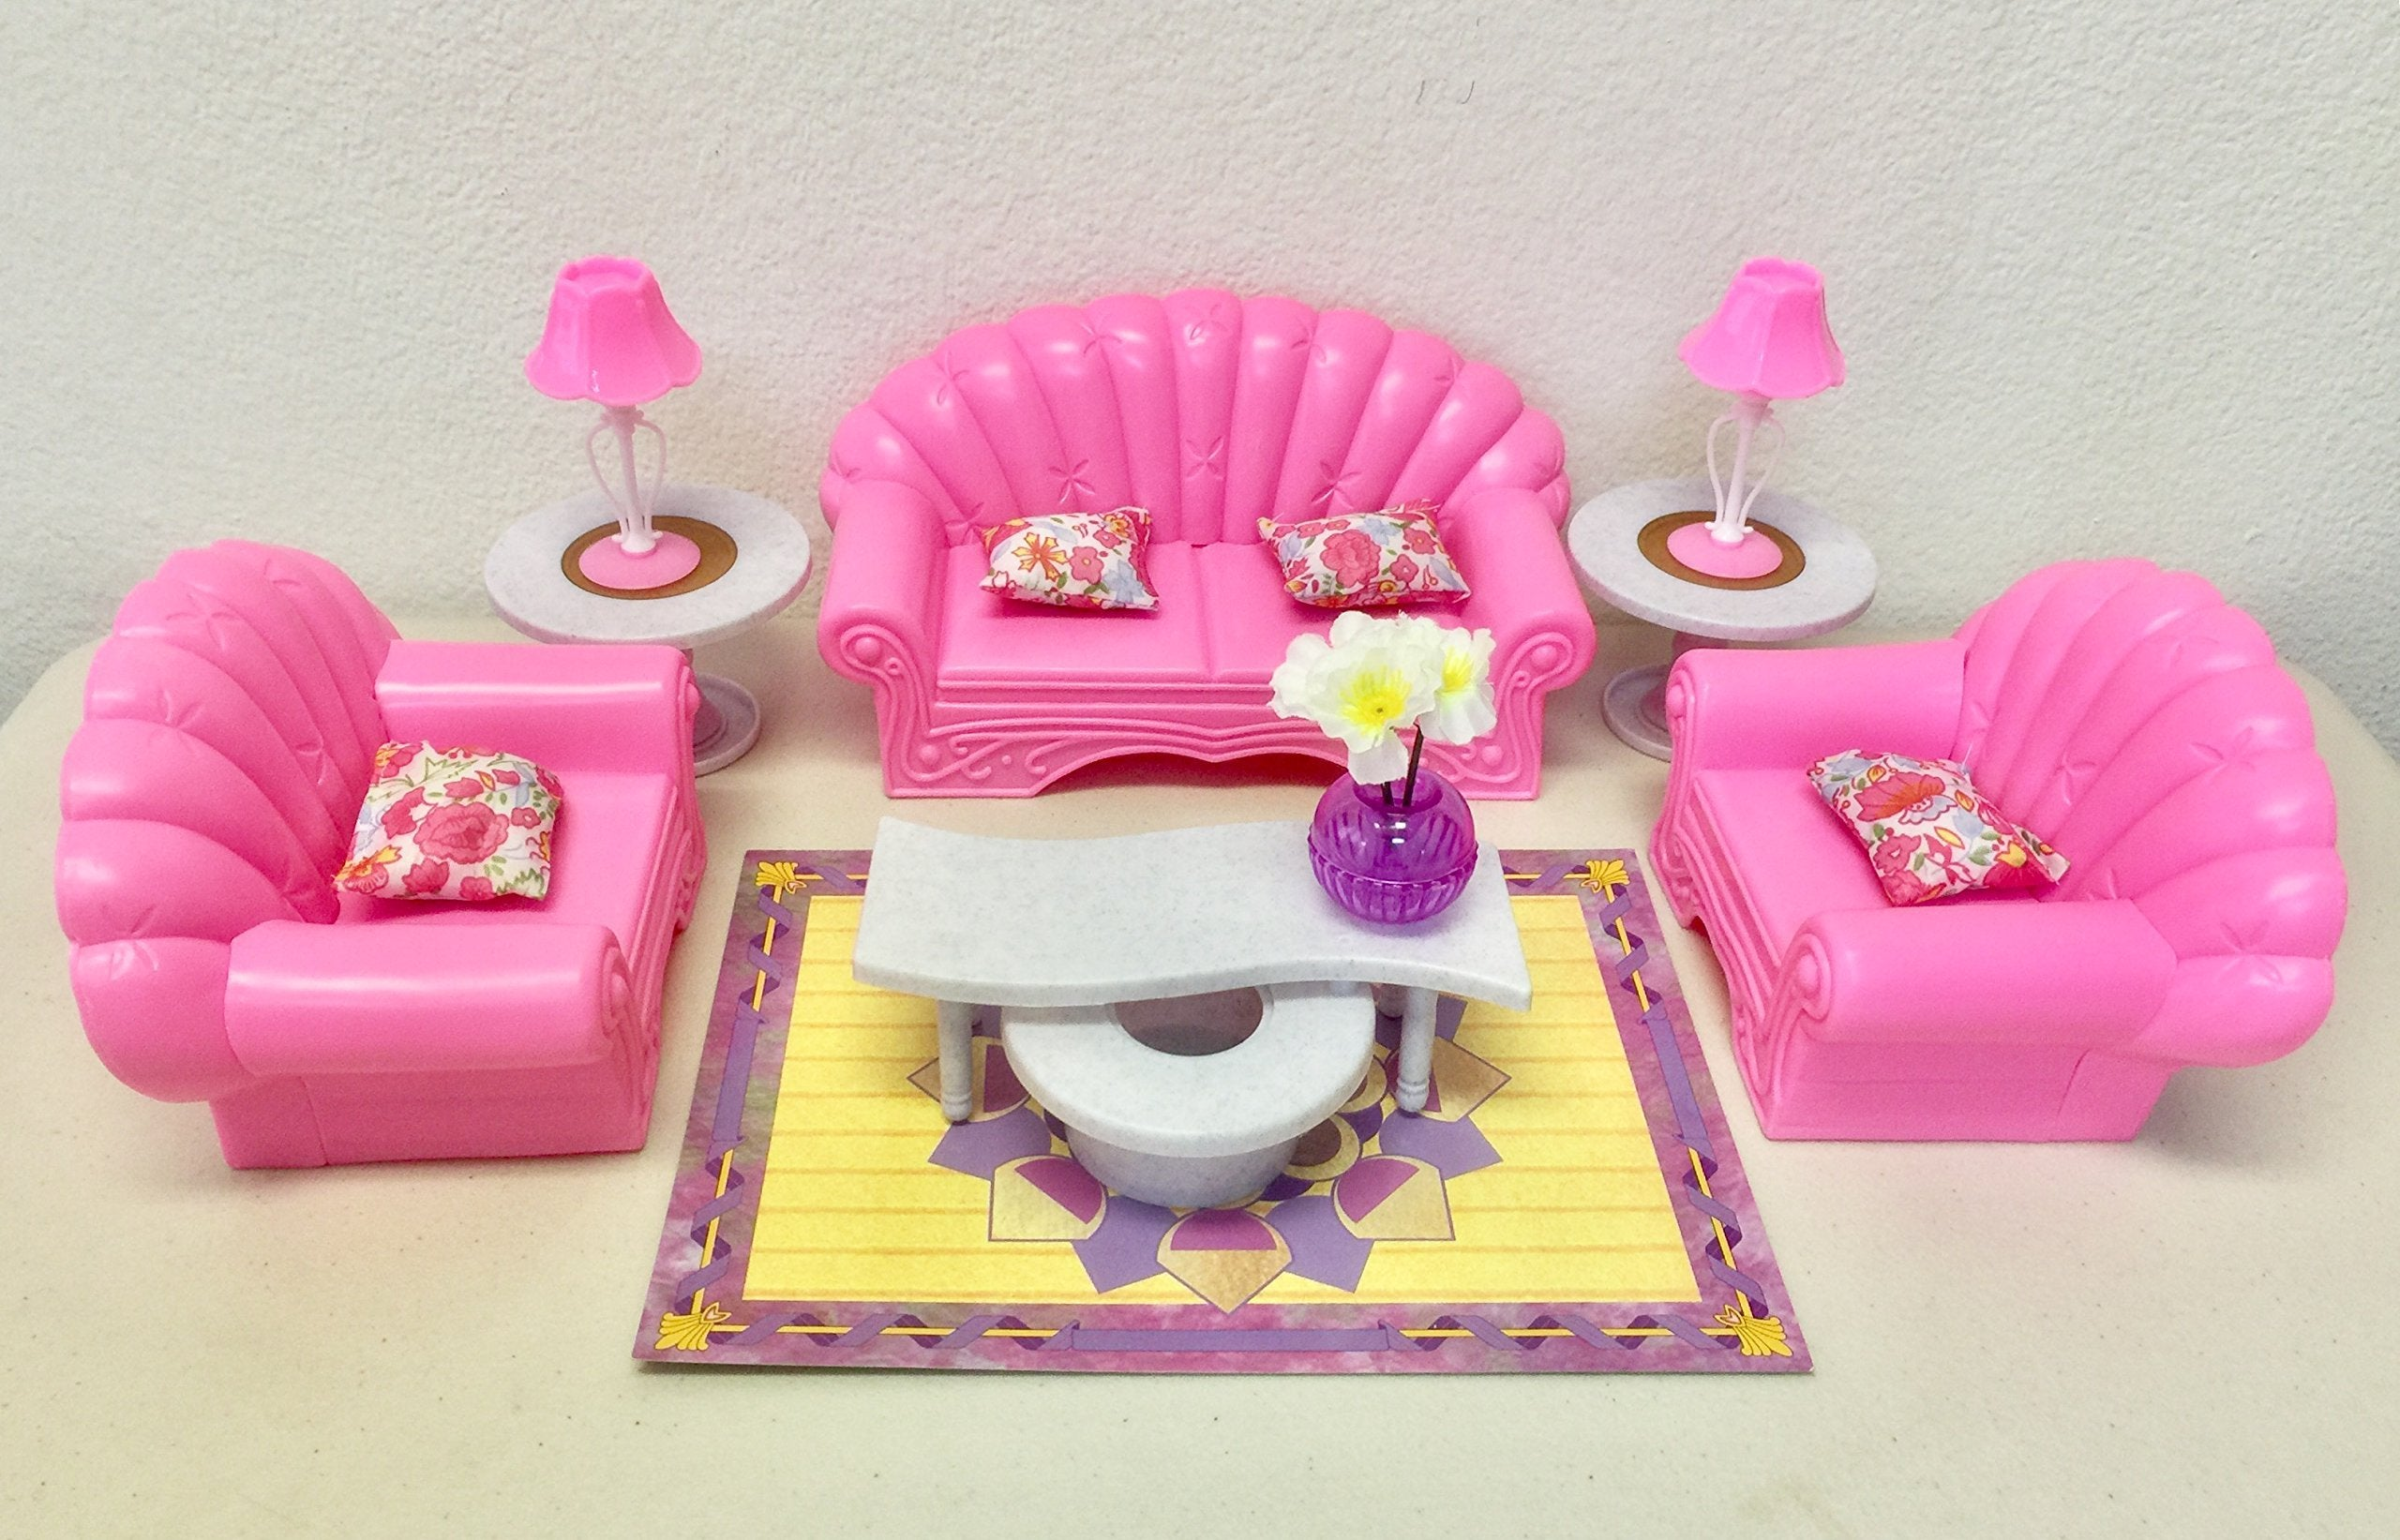 Dolls Gloria Barbie Size Dollhouse Furniture Living Room Set For Sale In Outside South